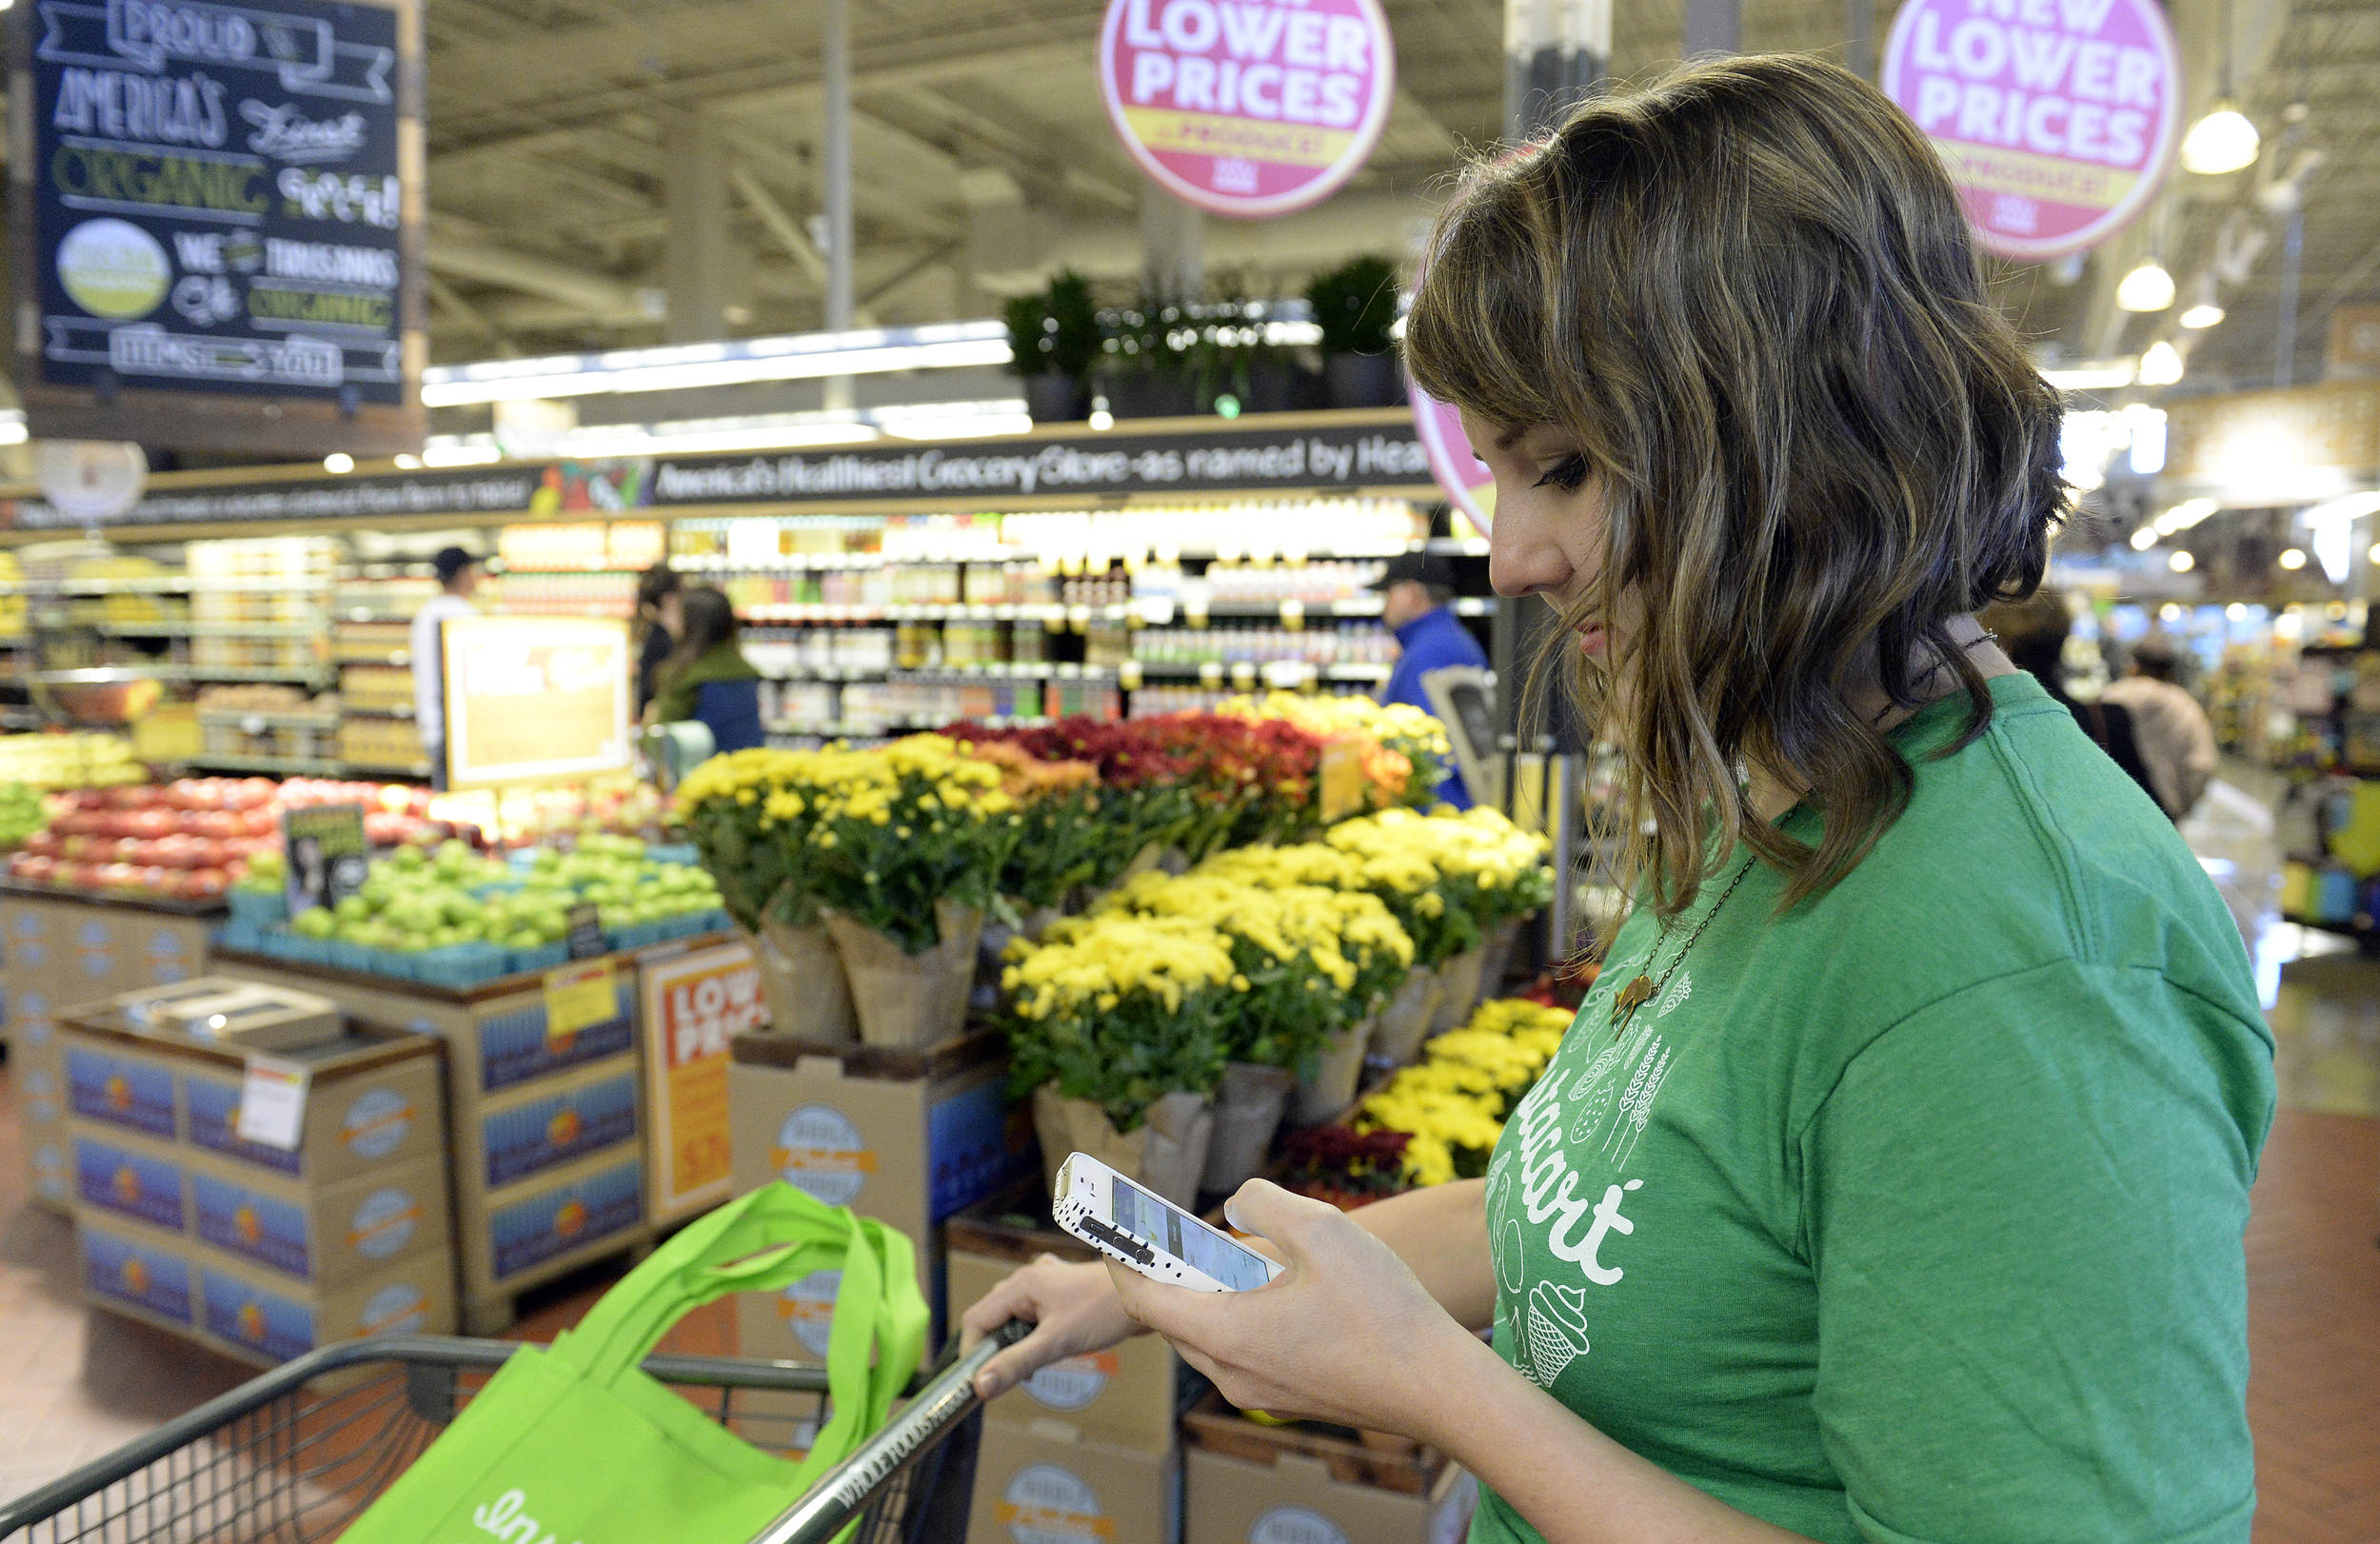 Instacart changes policy, will not use tips to subsidize